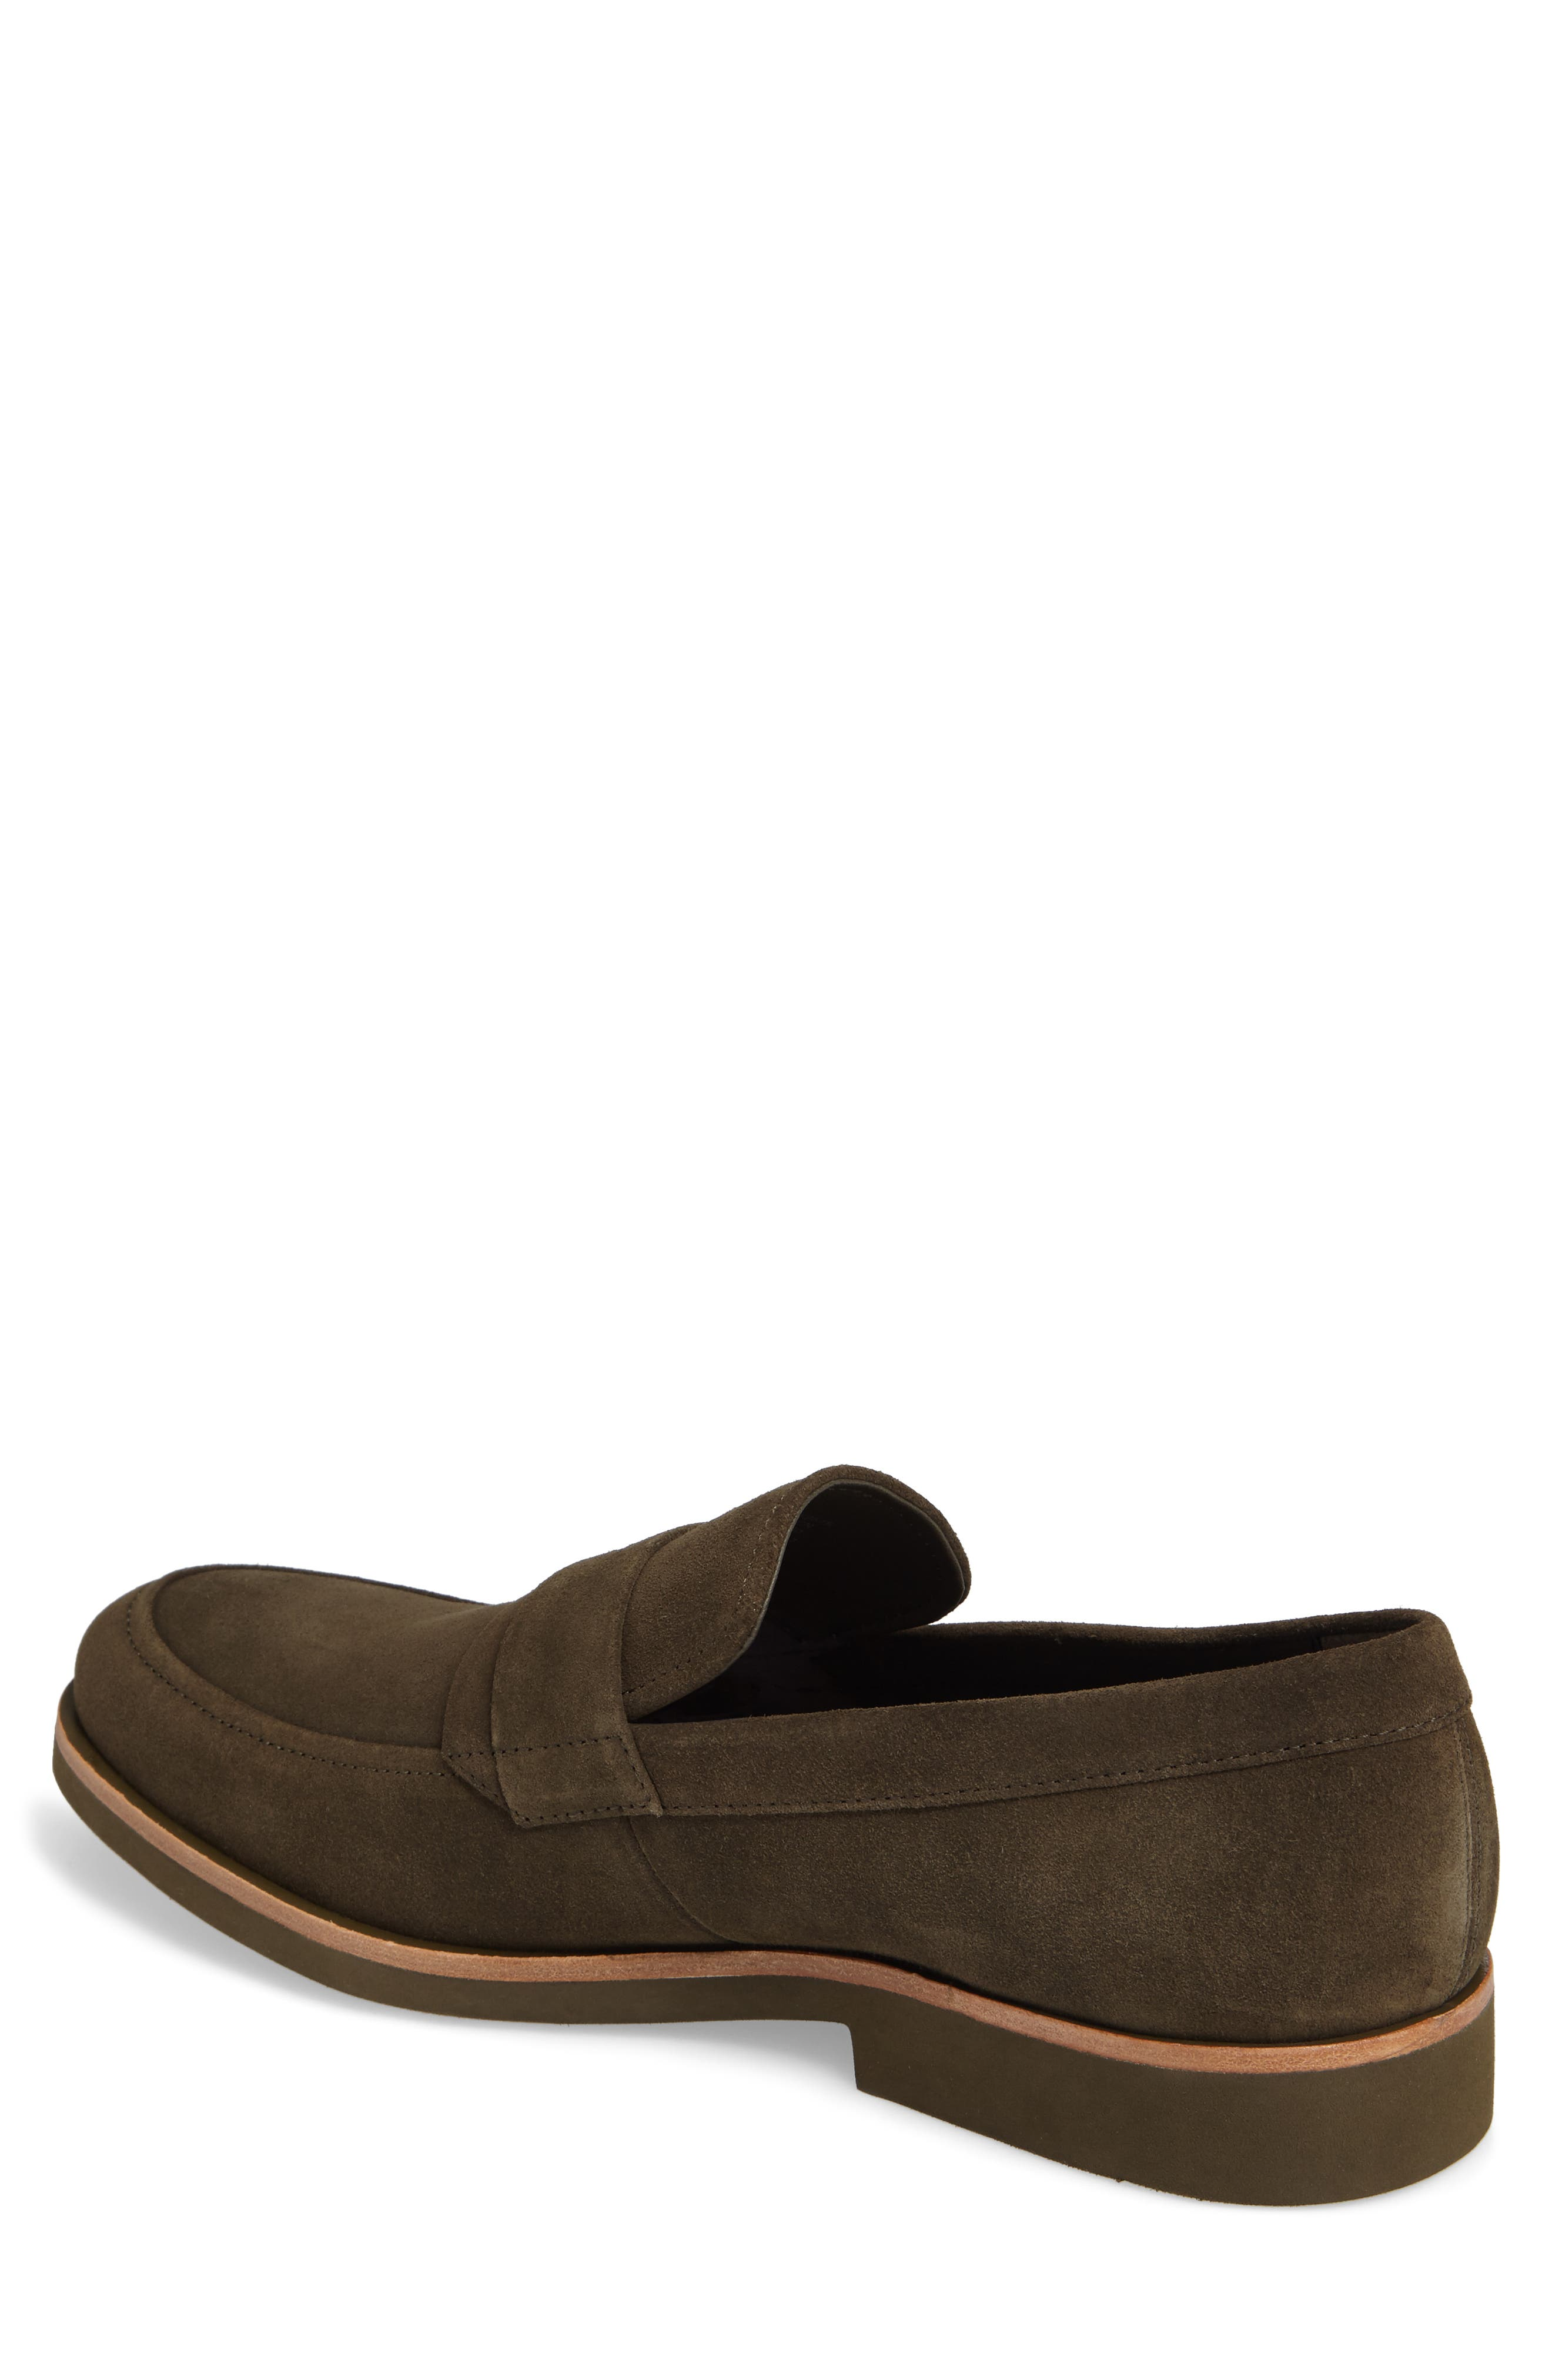 Forbes Loafer,                             Alternate thumbnail 5, color,